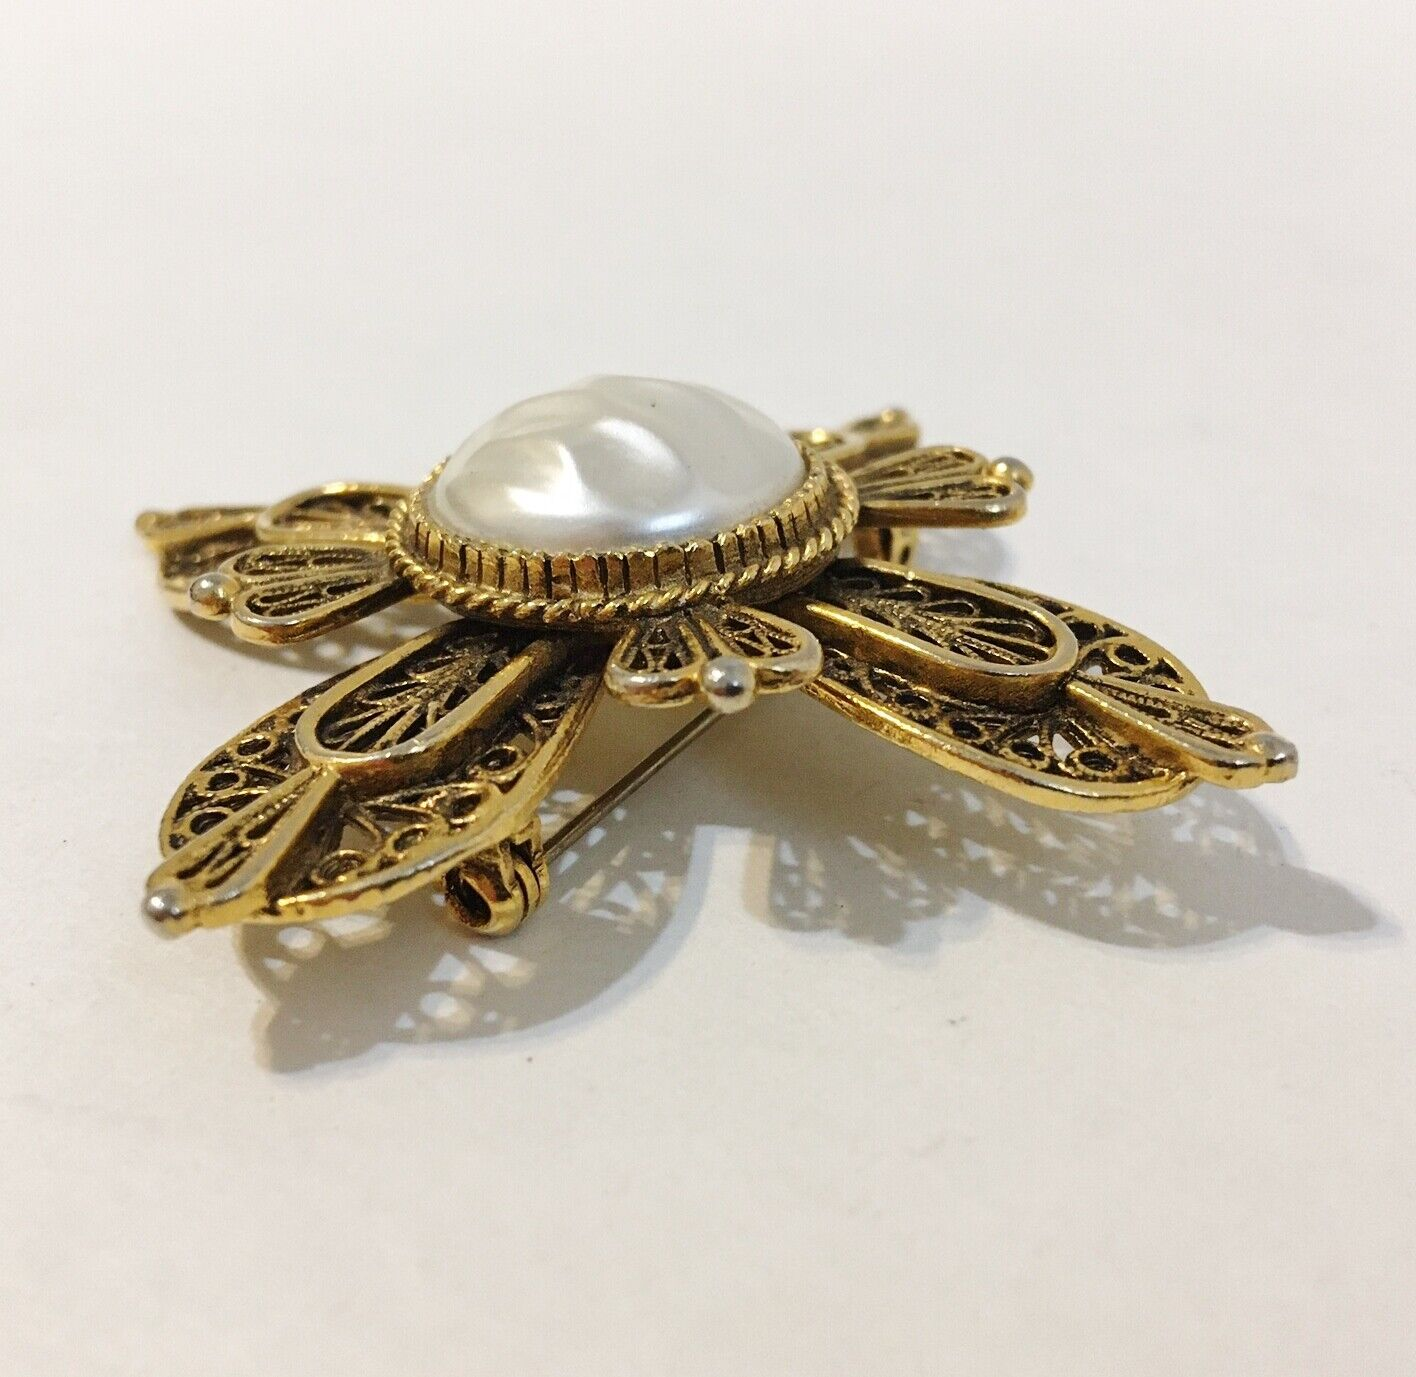 Avante Pin Brooch Vintage Faux Pearl Layered Orna… - image 3